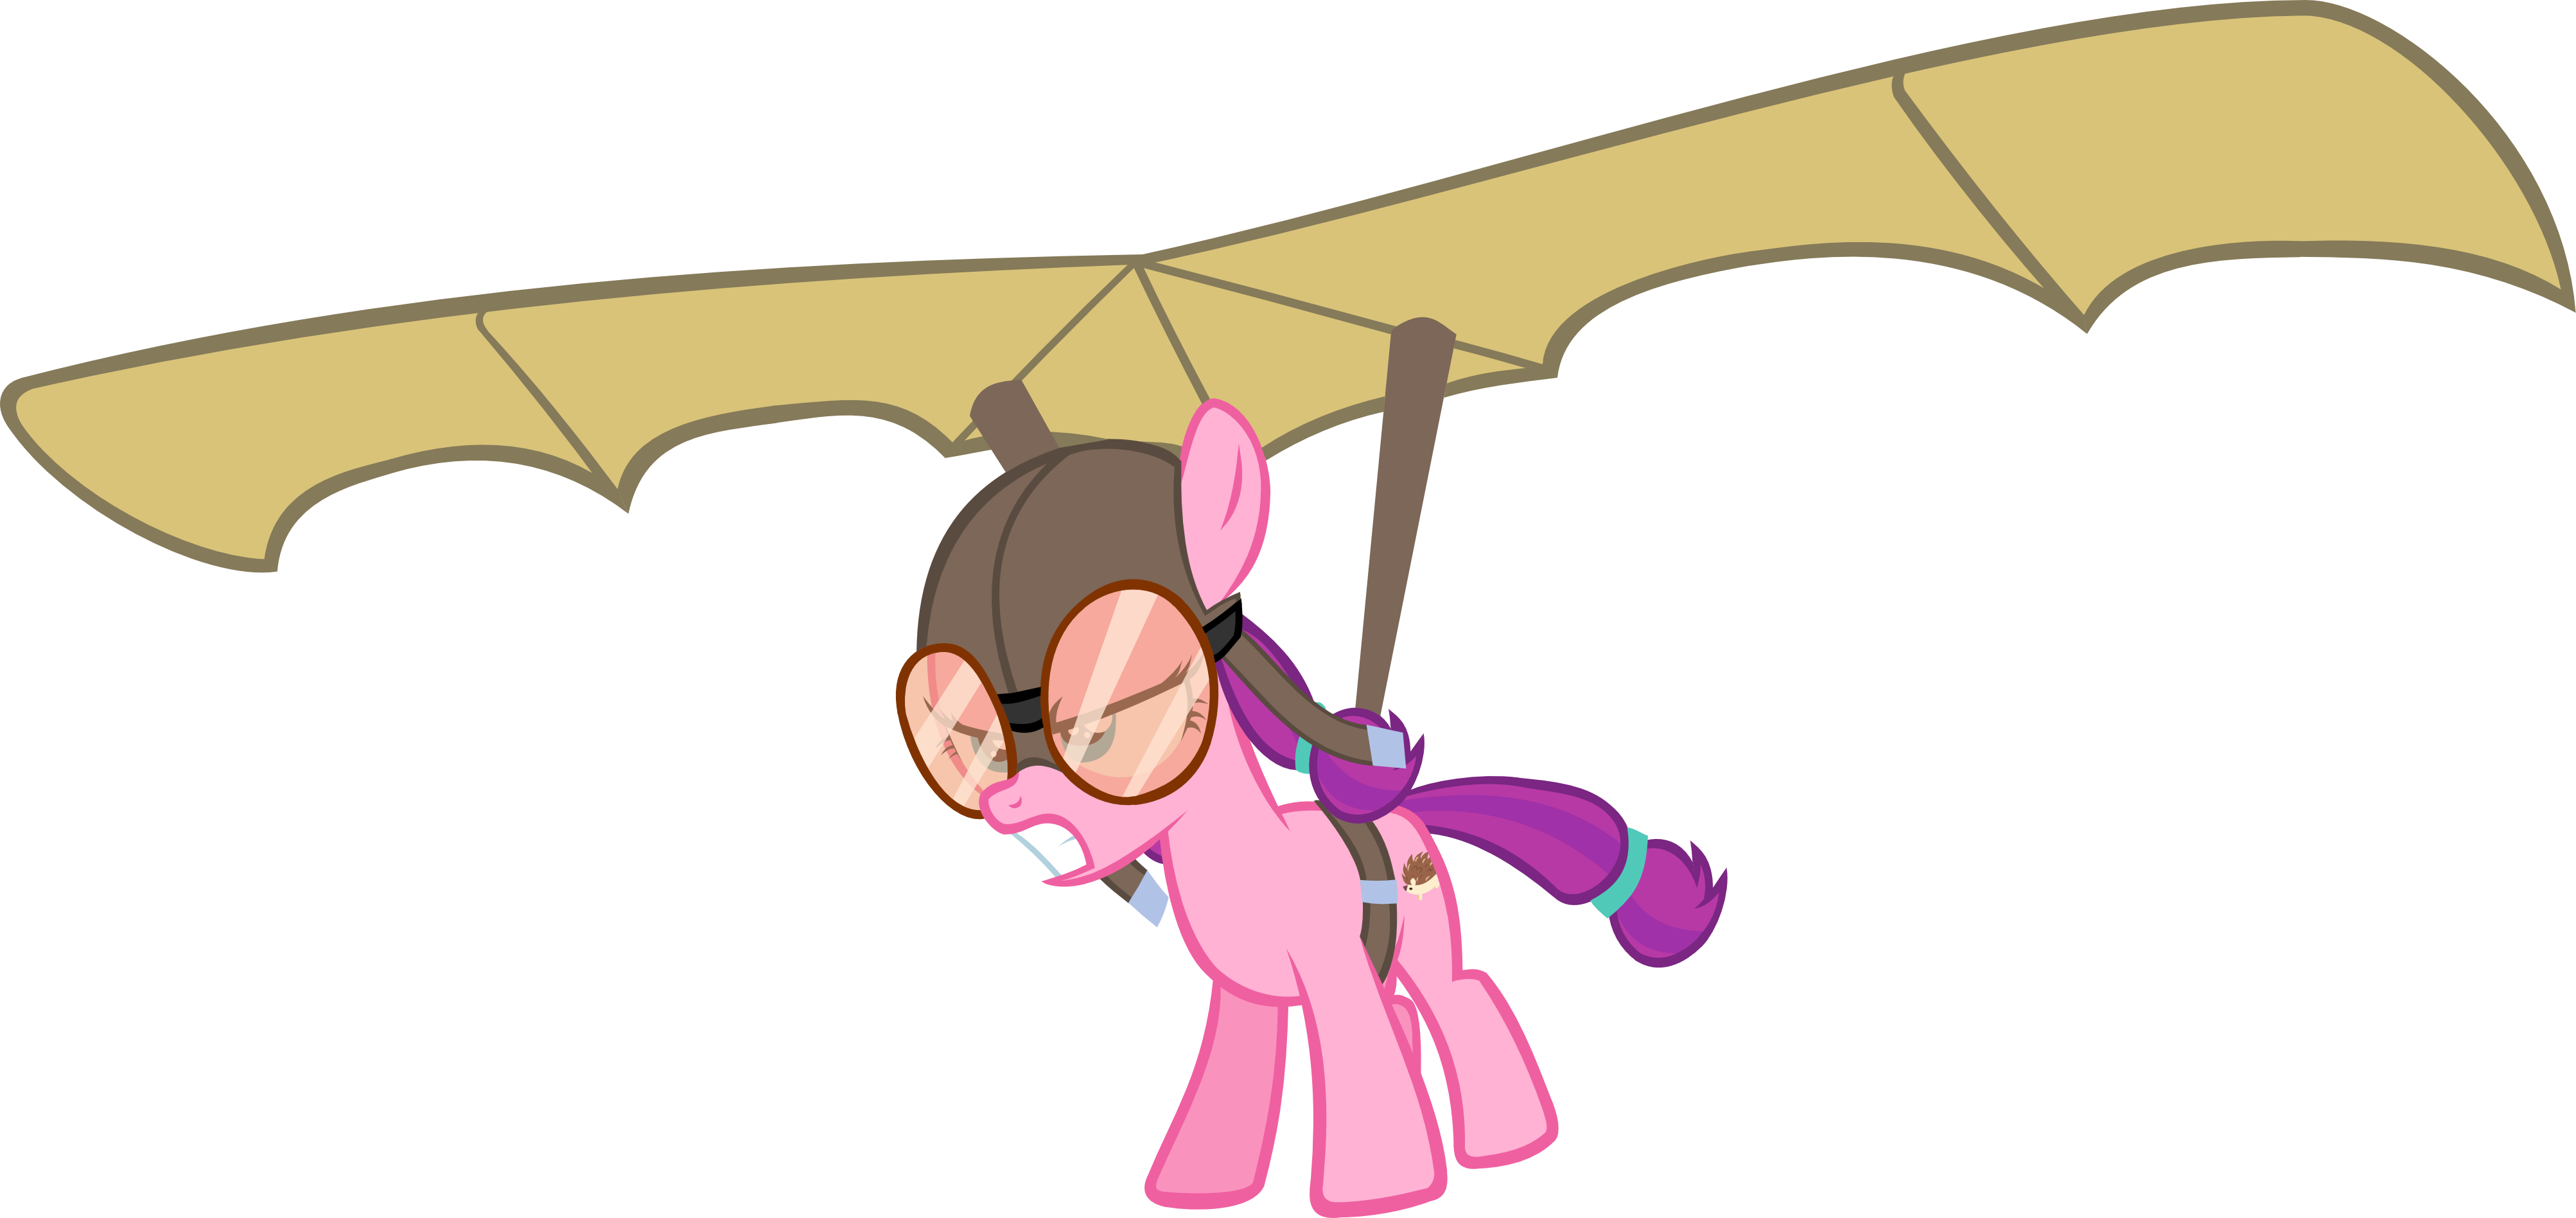 ready_for_gliding_by_ironm17-da4lc17.png